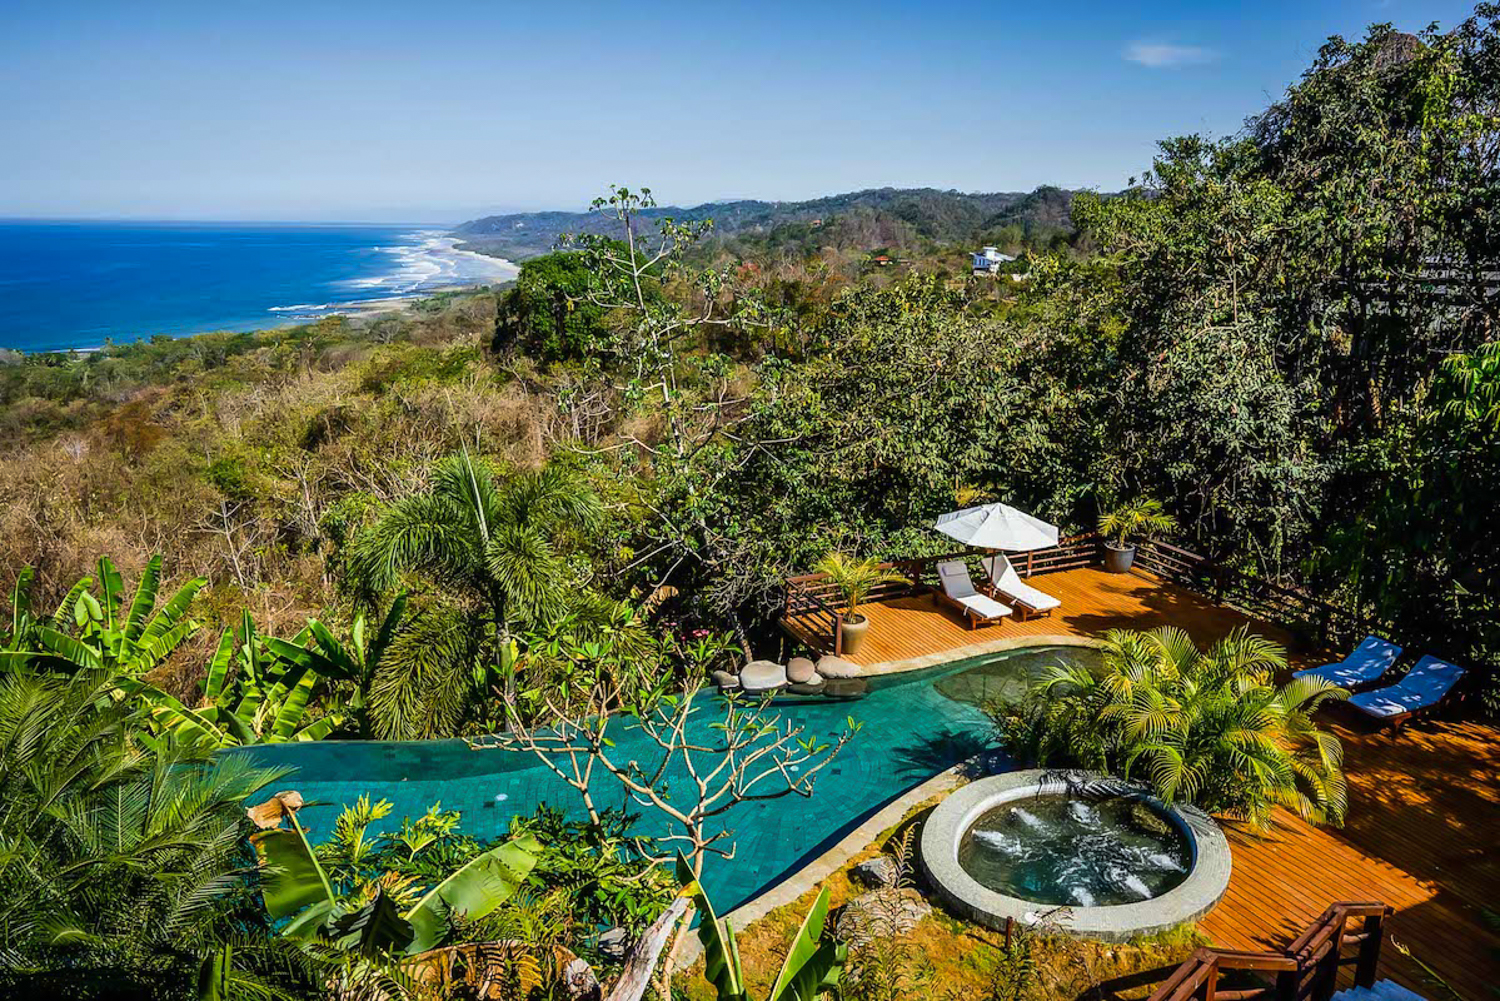 The pool at Villa Numa at Ocio Villas with stunning views of the Pacific Ocean and rainforest.